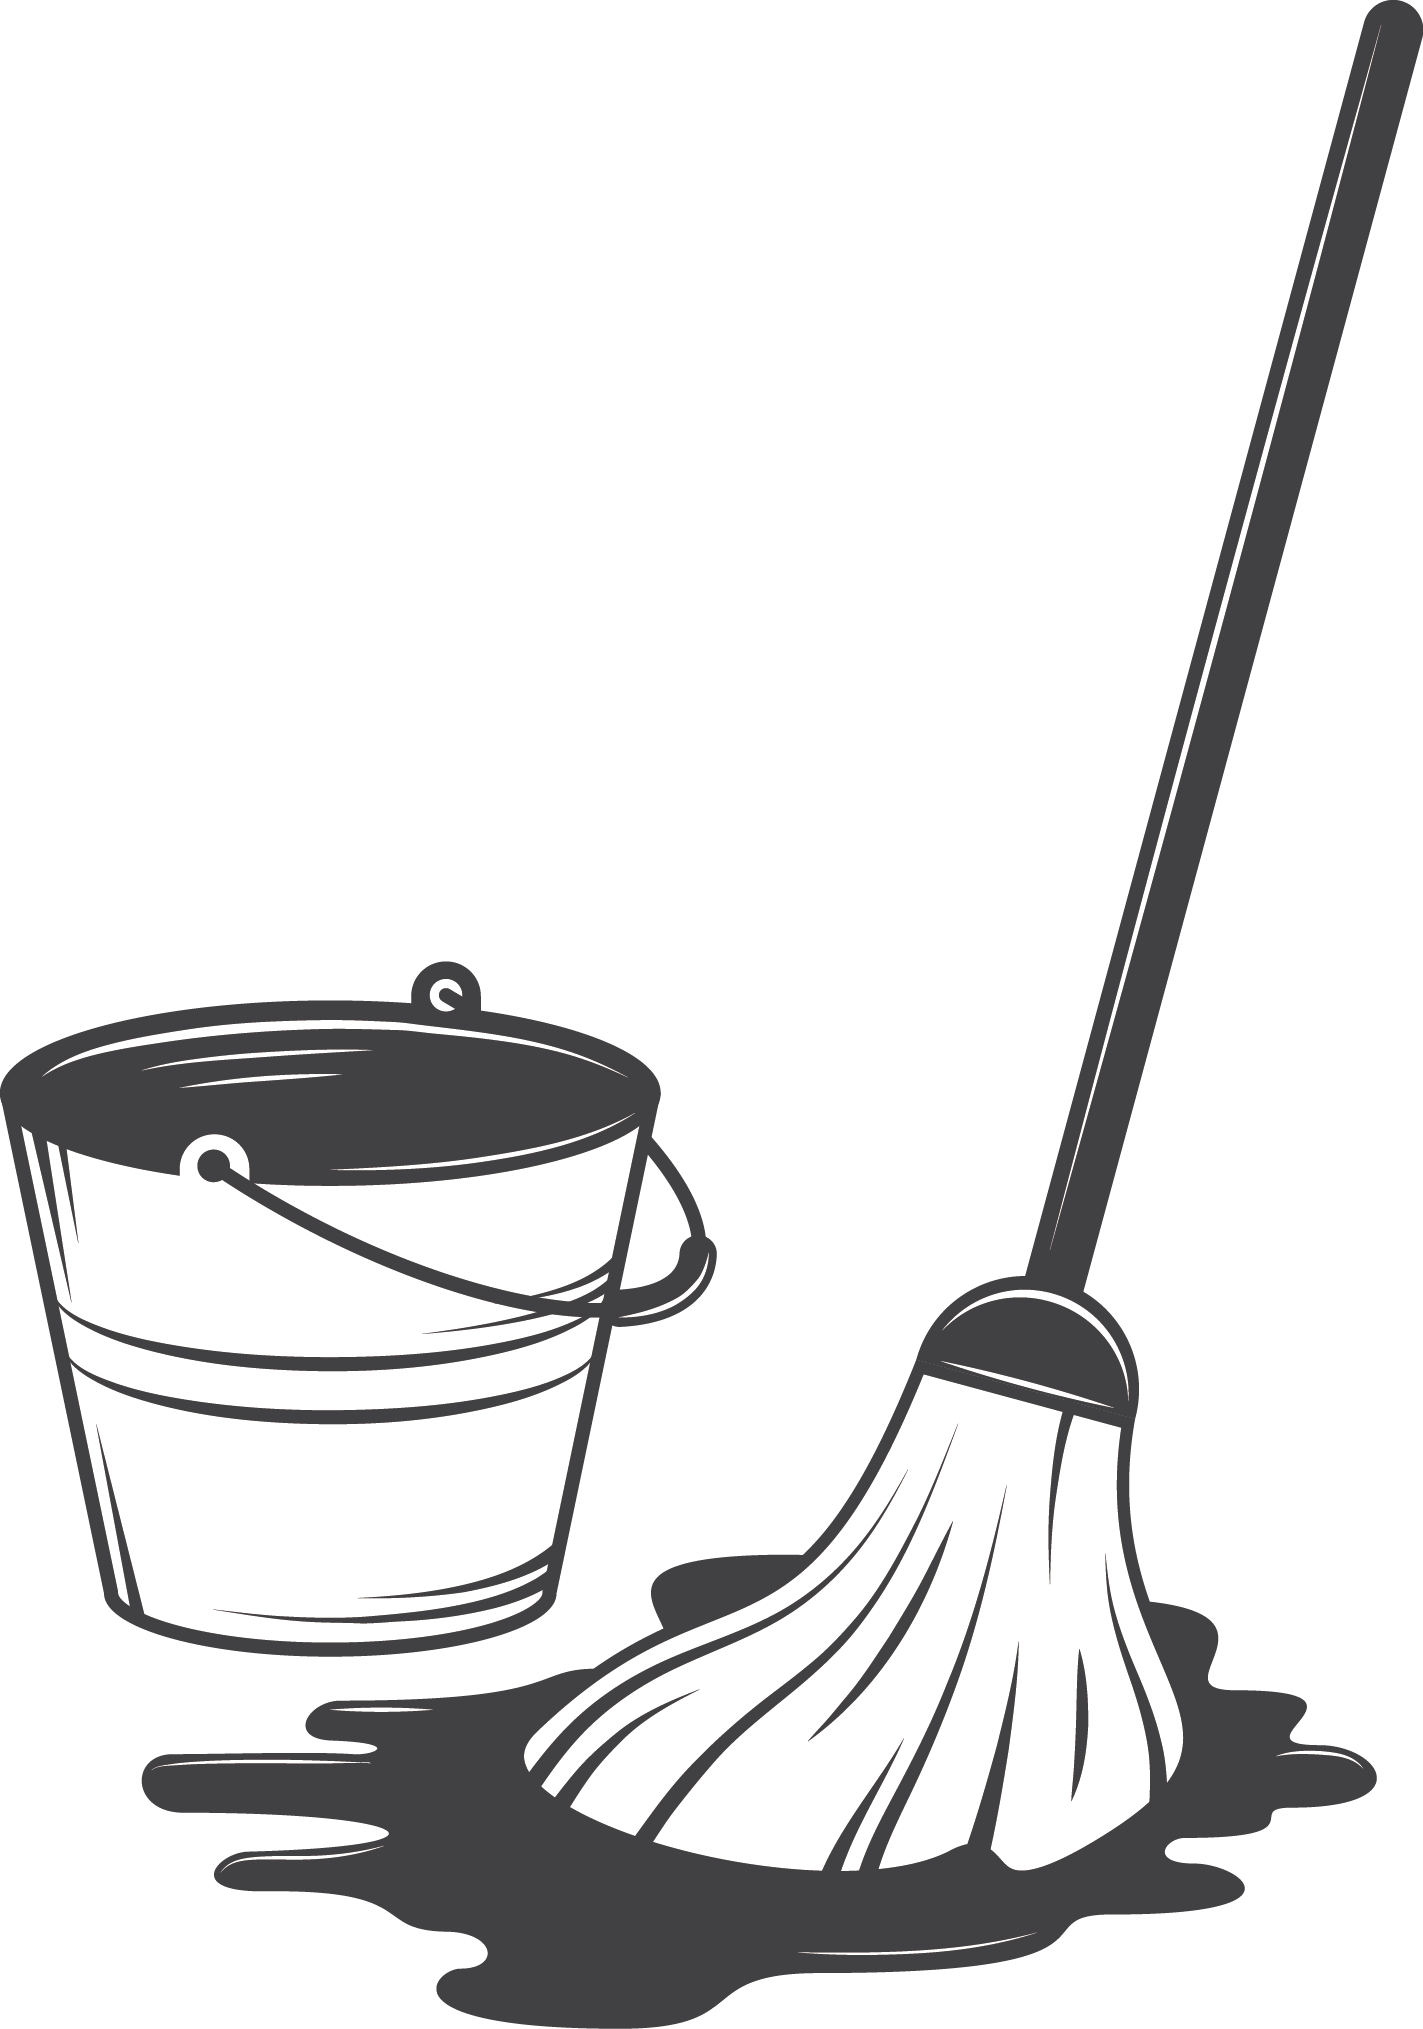 Cleaning drawing mop. Tool illustration and bucket